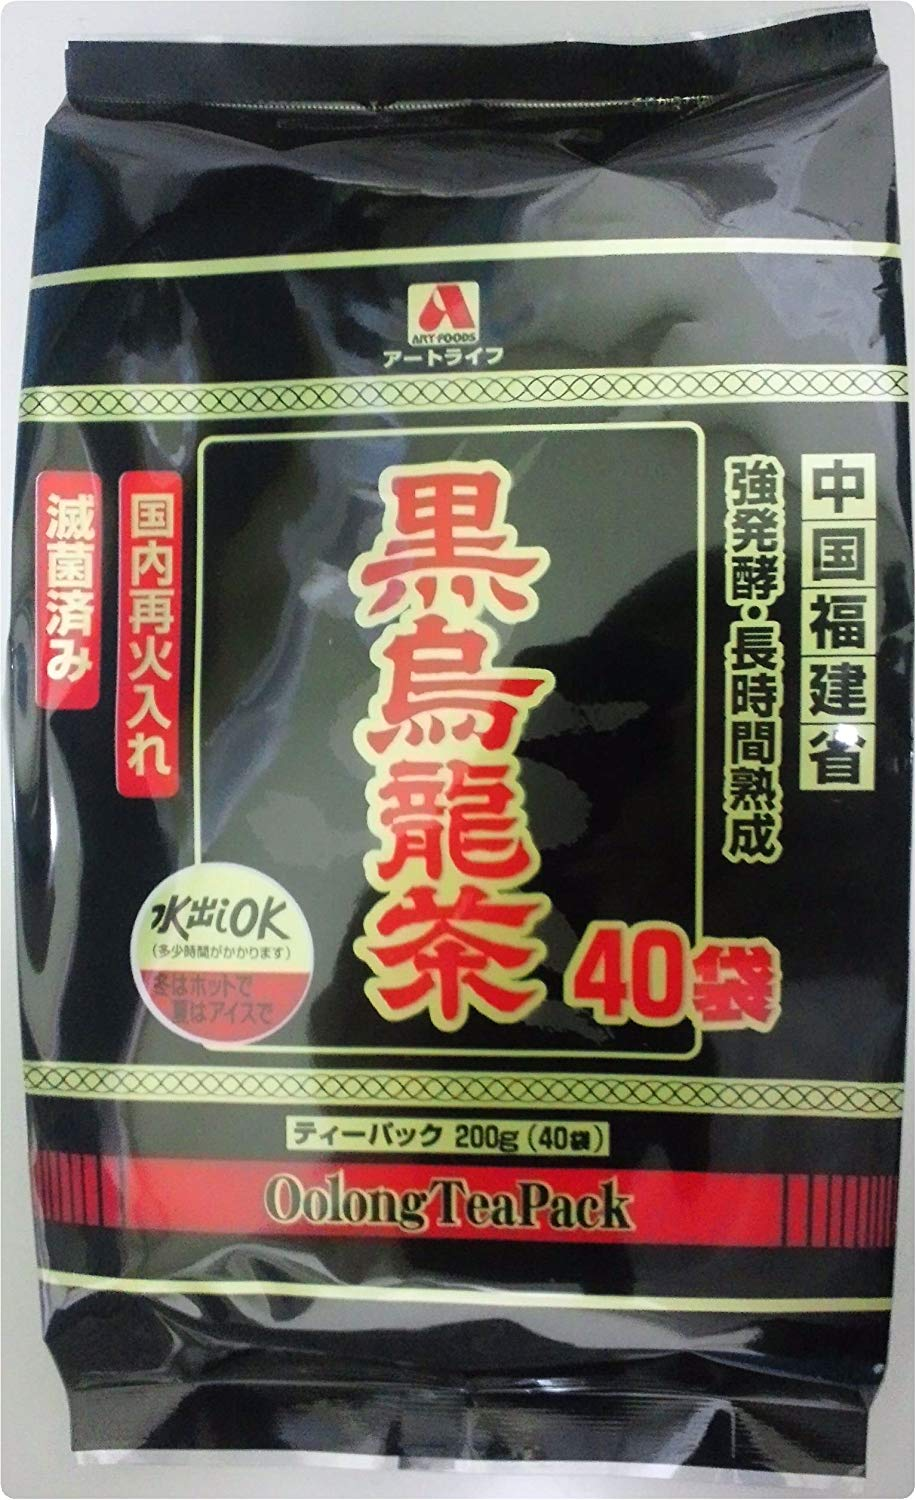 Art black oolong tea pack 40P